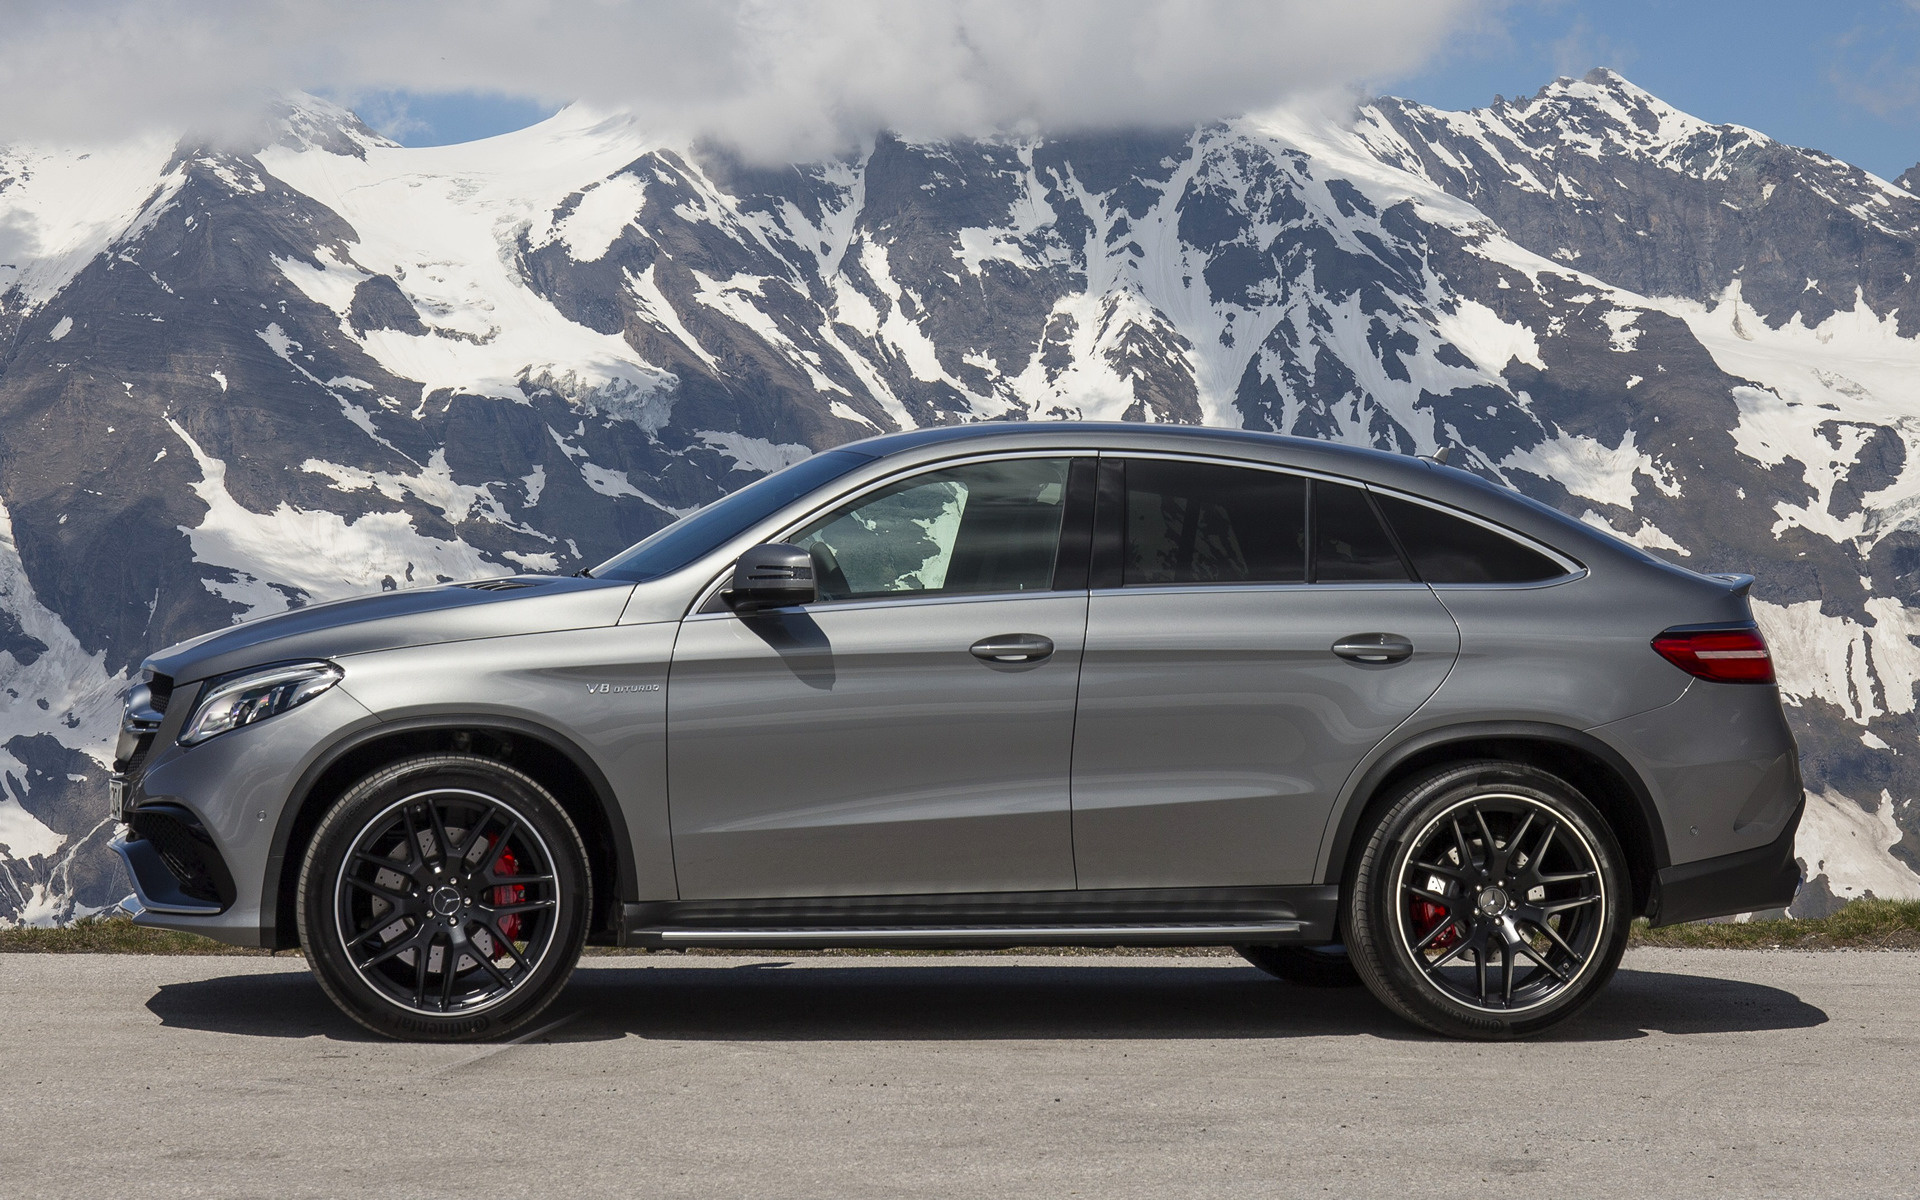 2016 Hyundai Genesis Coupe >> 2015 Mercedes-AMG GLE 63 S Coupe - Wallpapers and HD ...